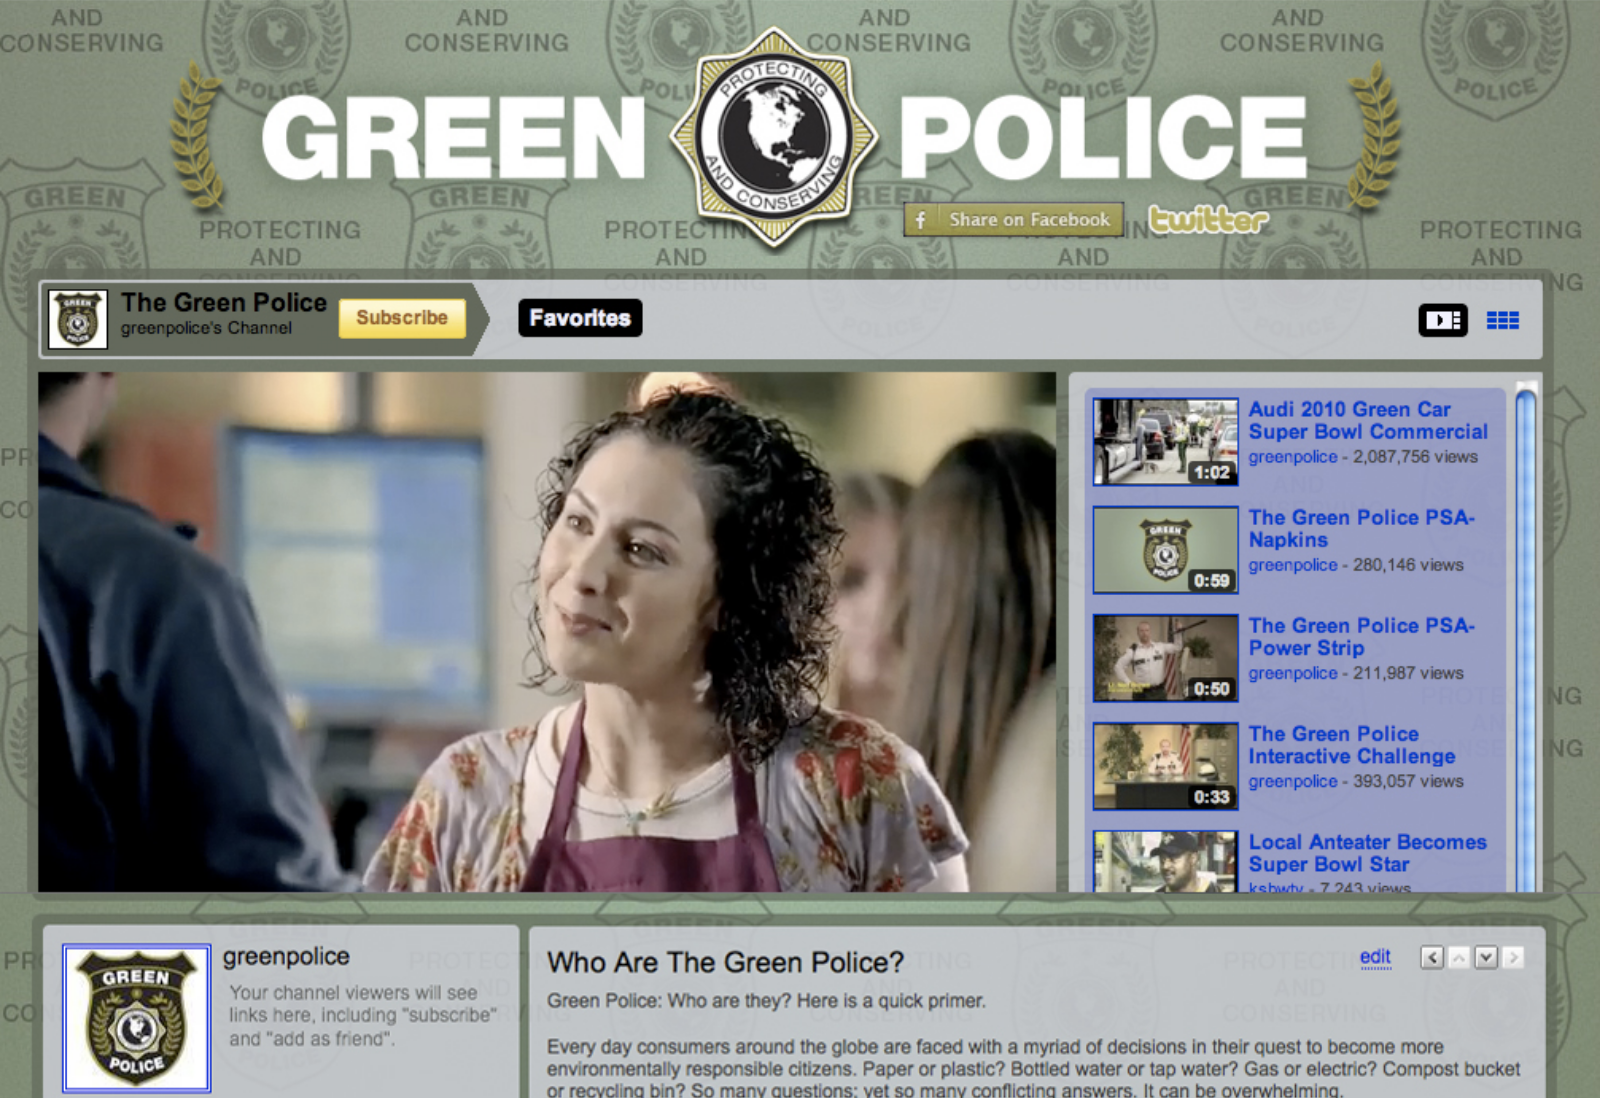 Audi Green Police - Interactive videos on Green Police YouTube channel establish best practice.